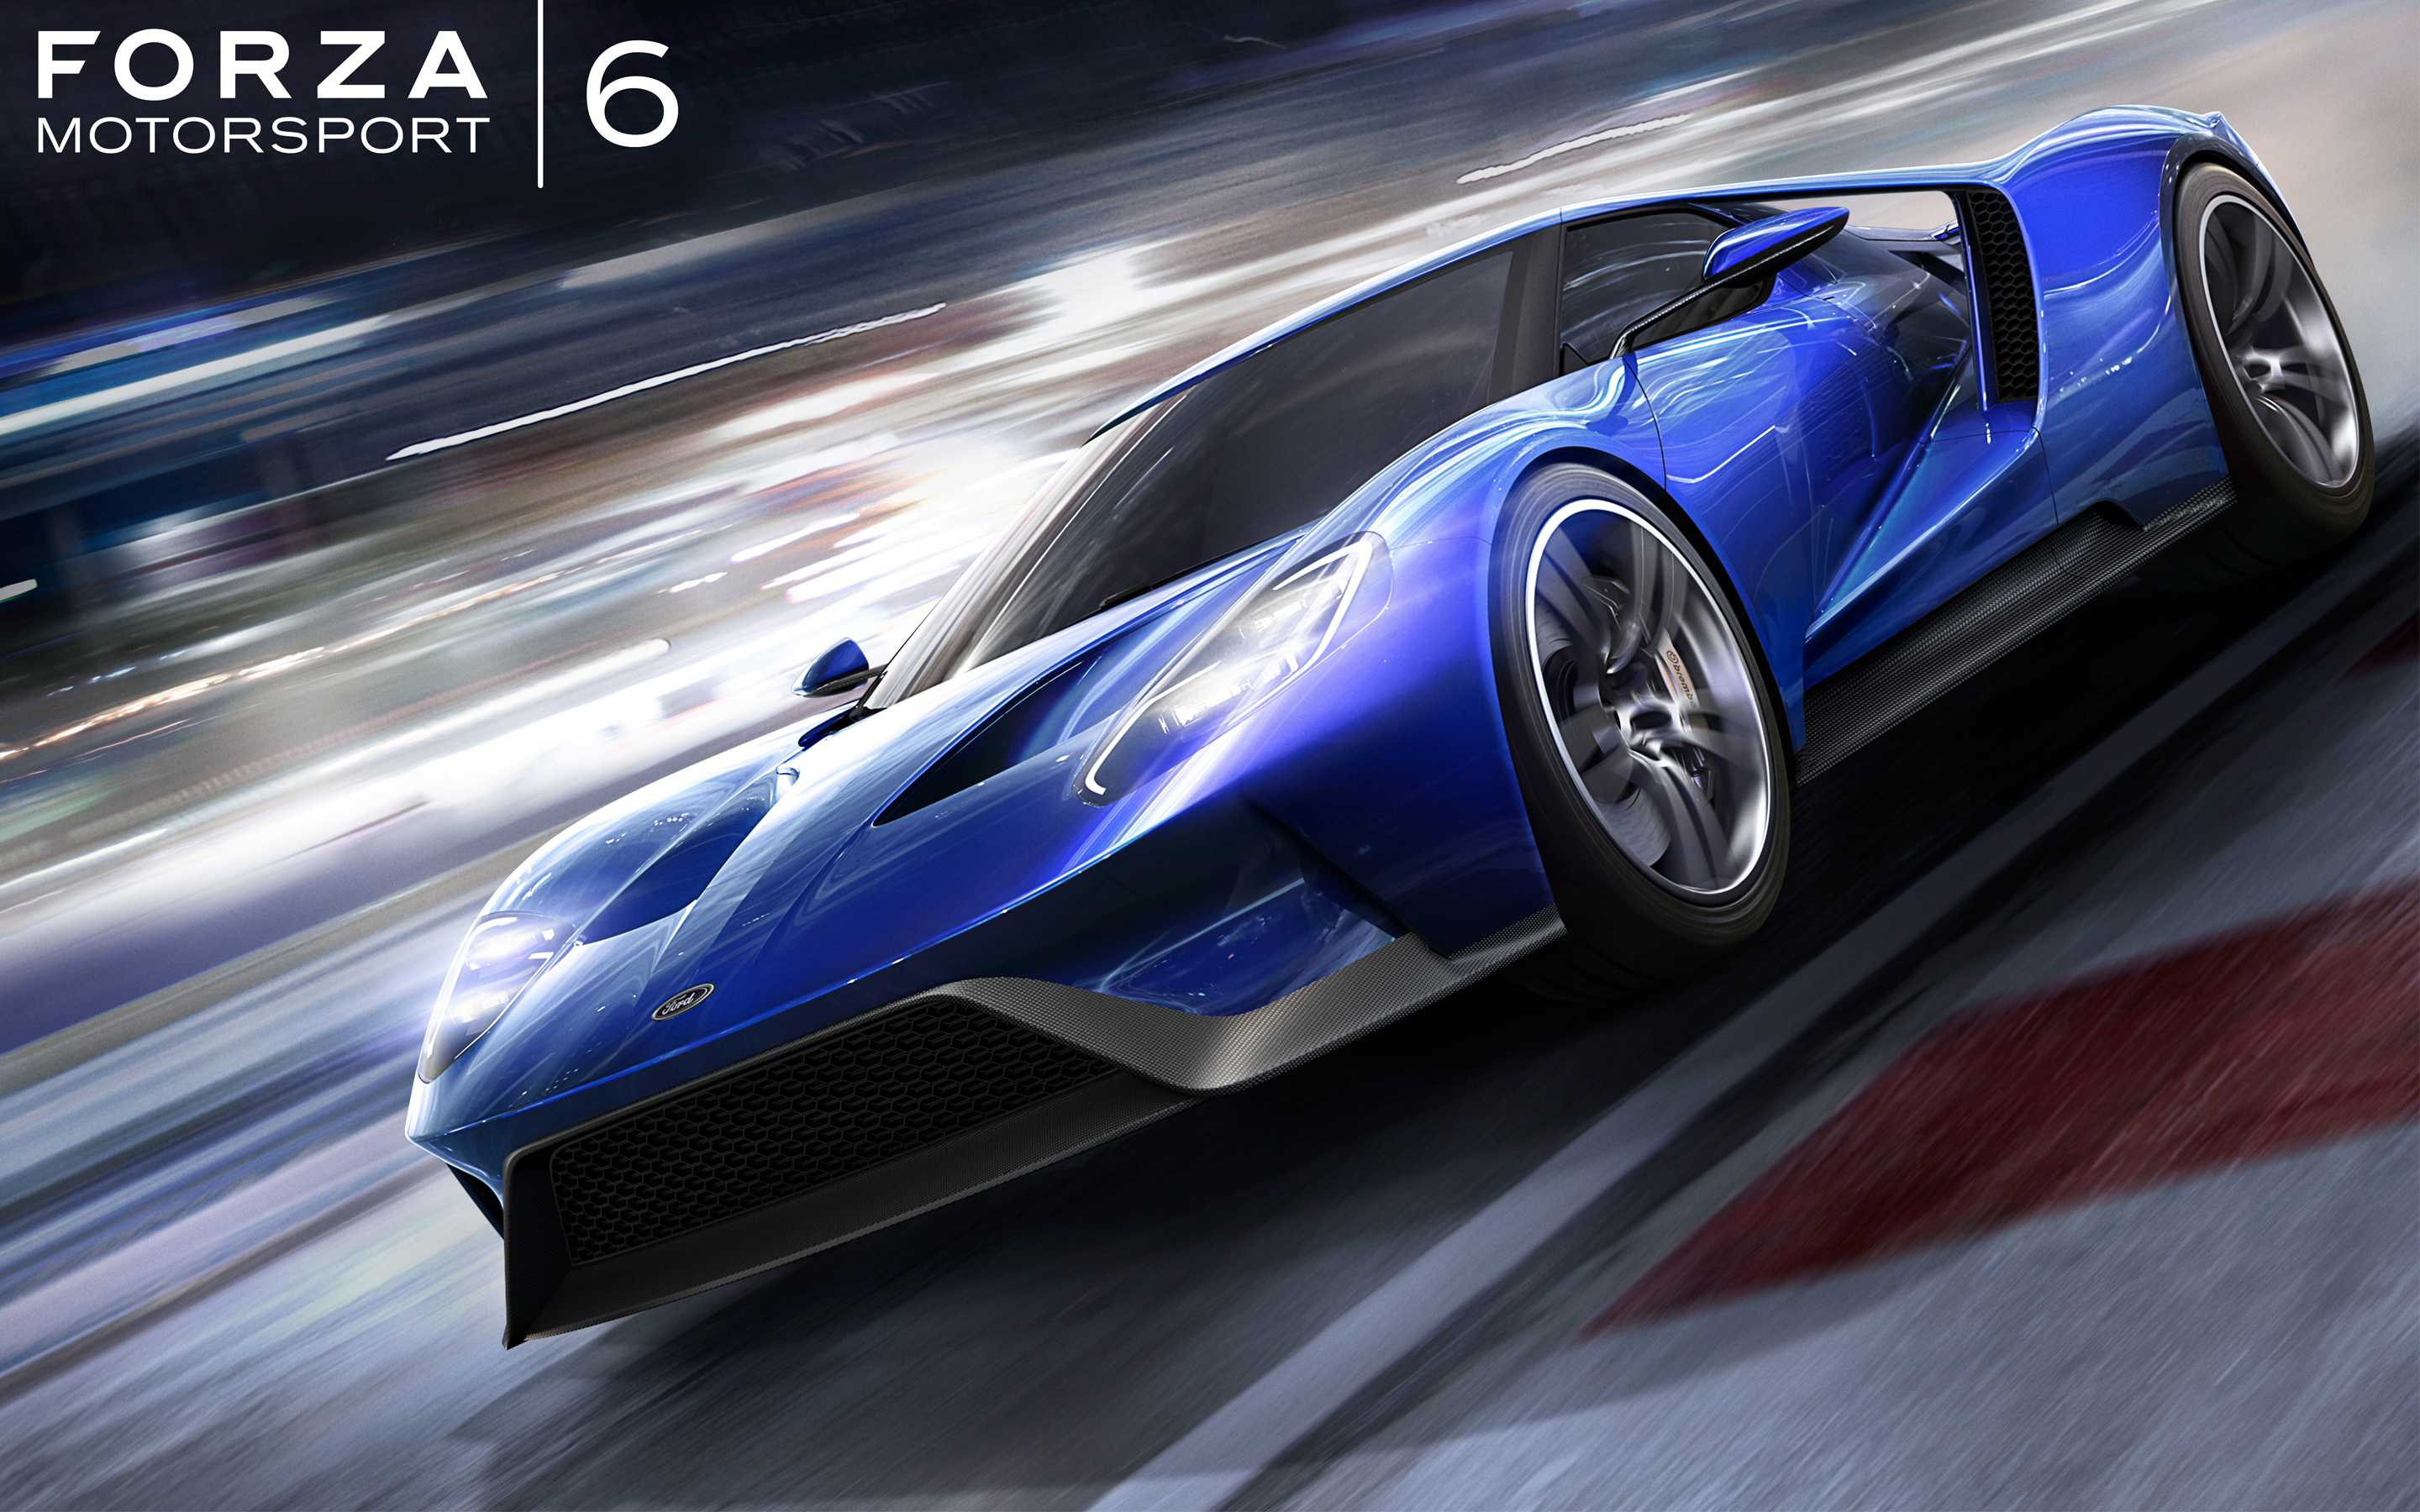 Ford GT Forza Motorsport 6